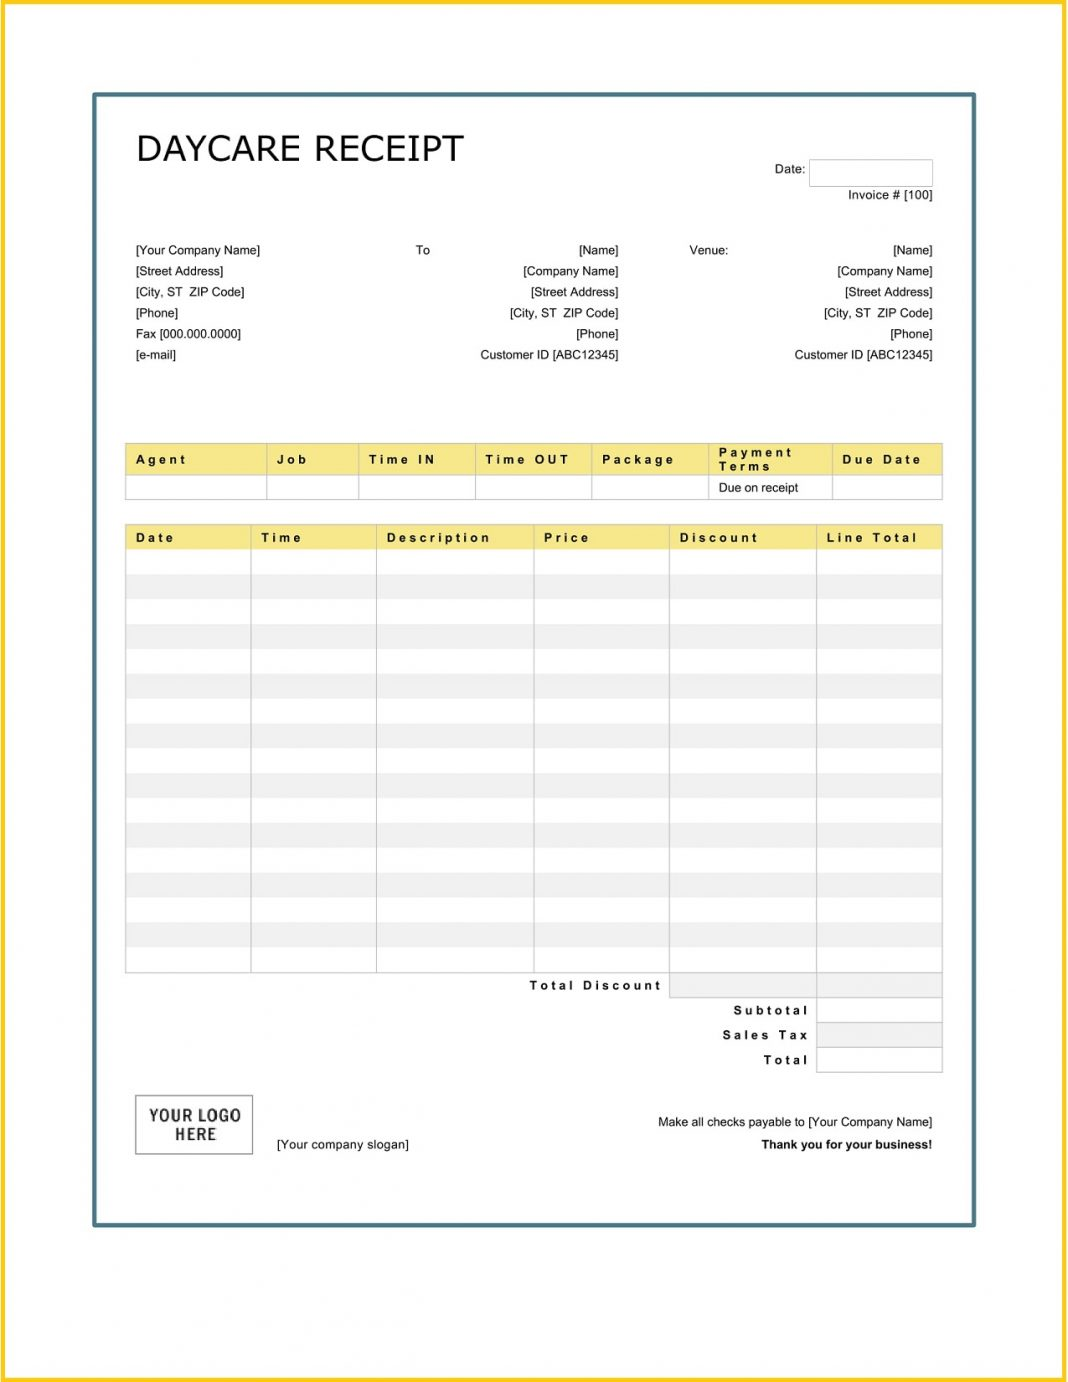 Daycare Services Receipt Word Teplate How To Fill Out Book For Child Care Letter Payment Parents Fillable Template Excel  Sample Large